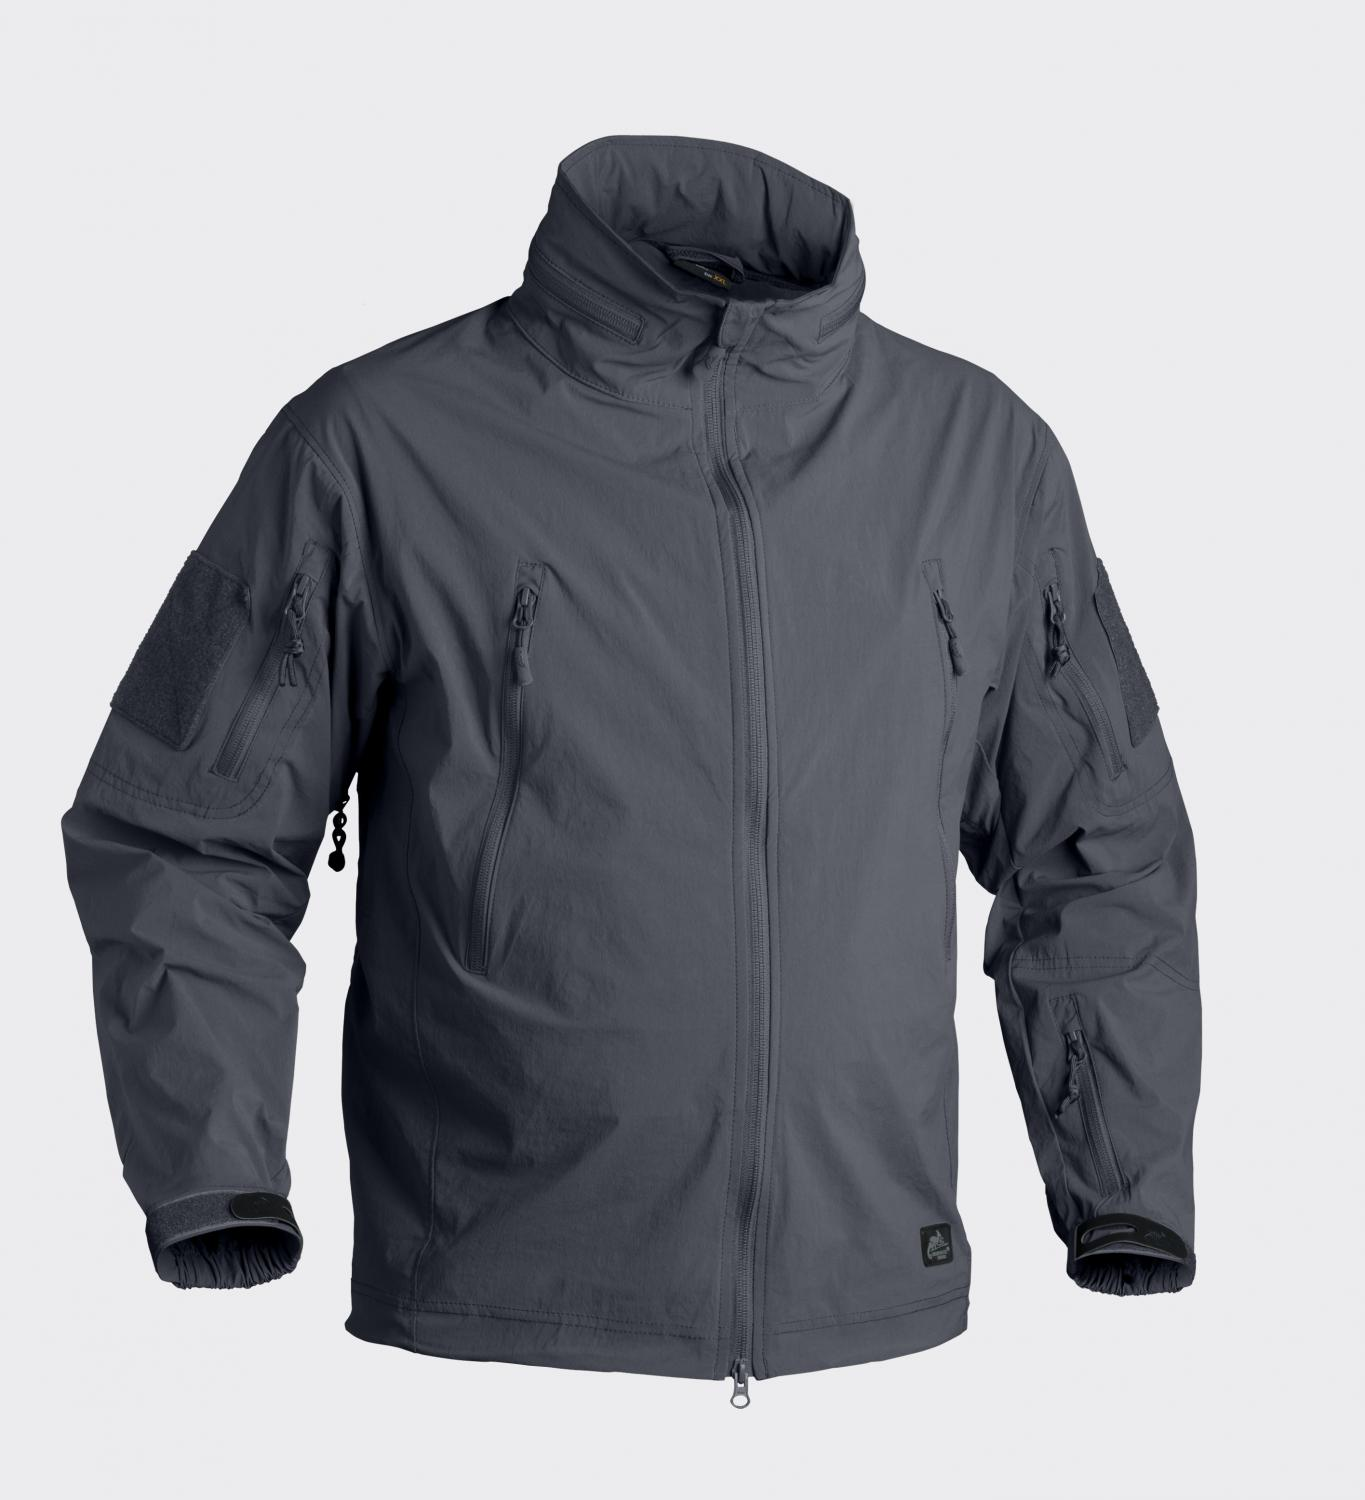 TROOPER - SoftShell Shadow Grey